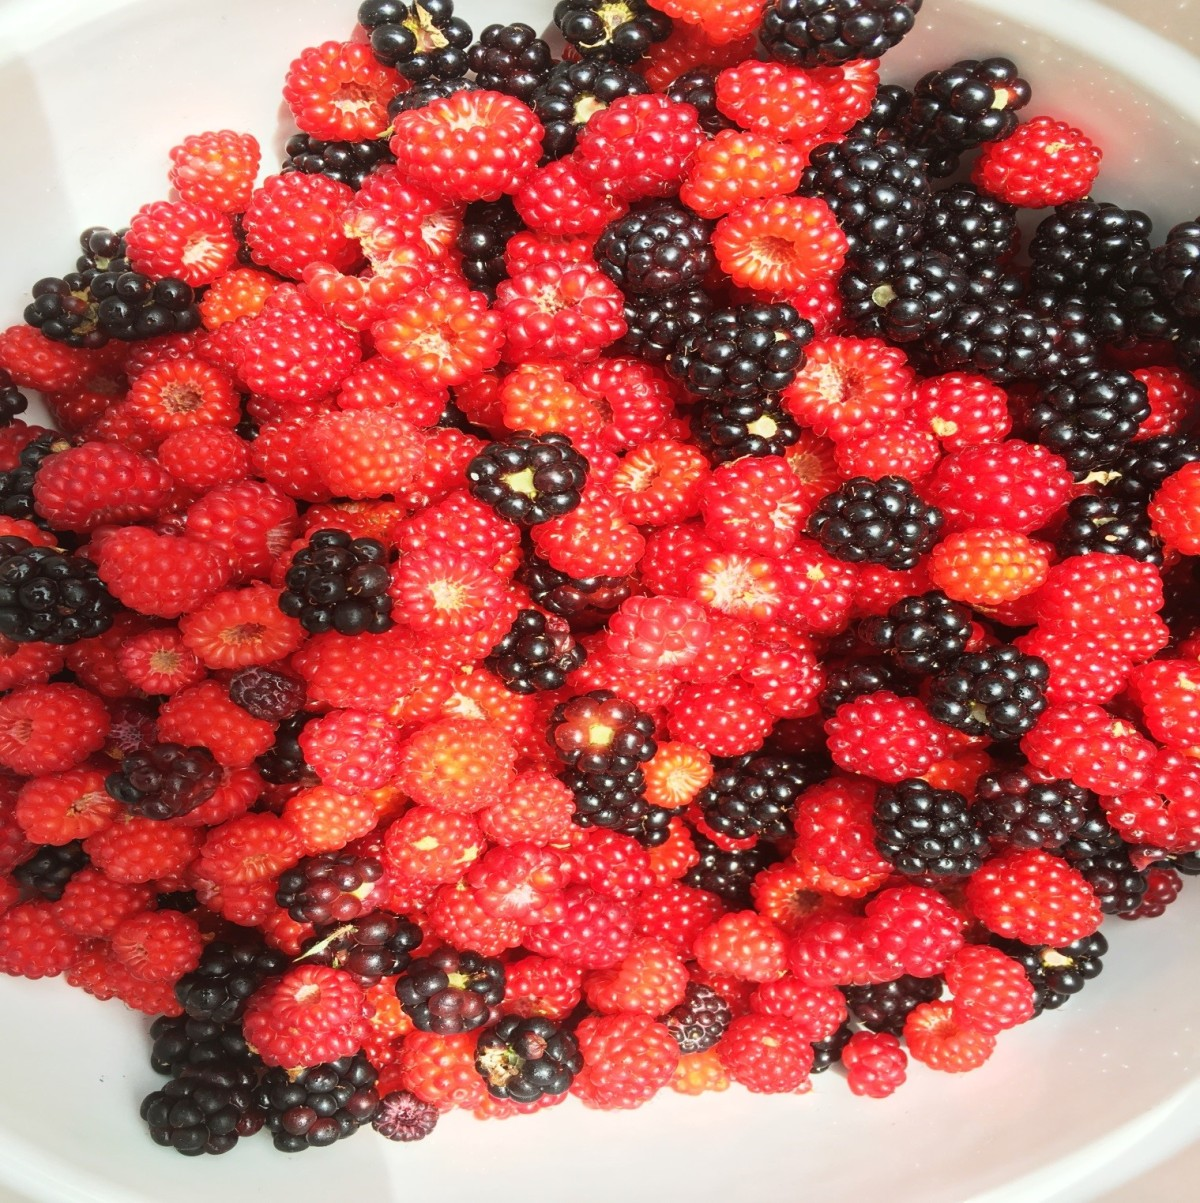 wineberries2